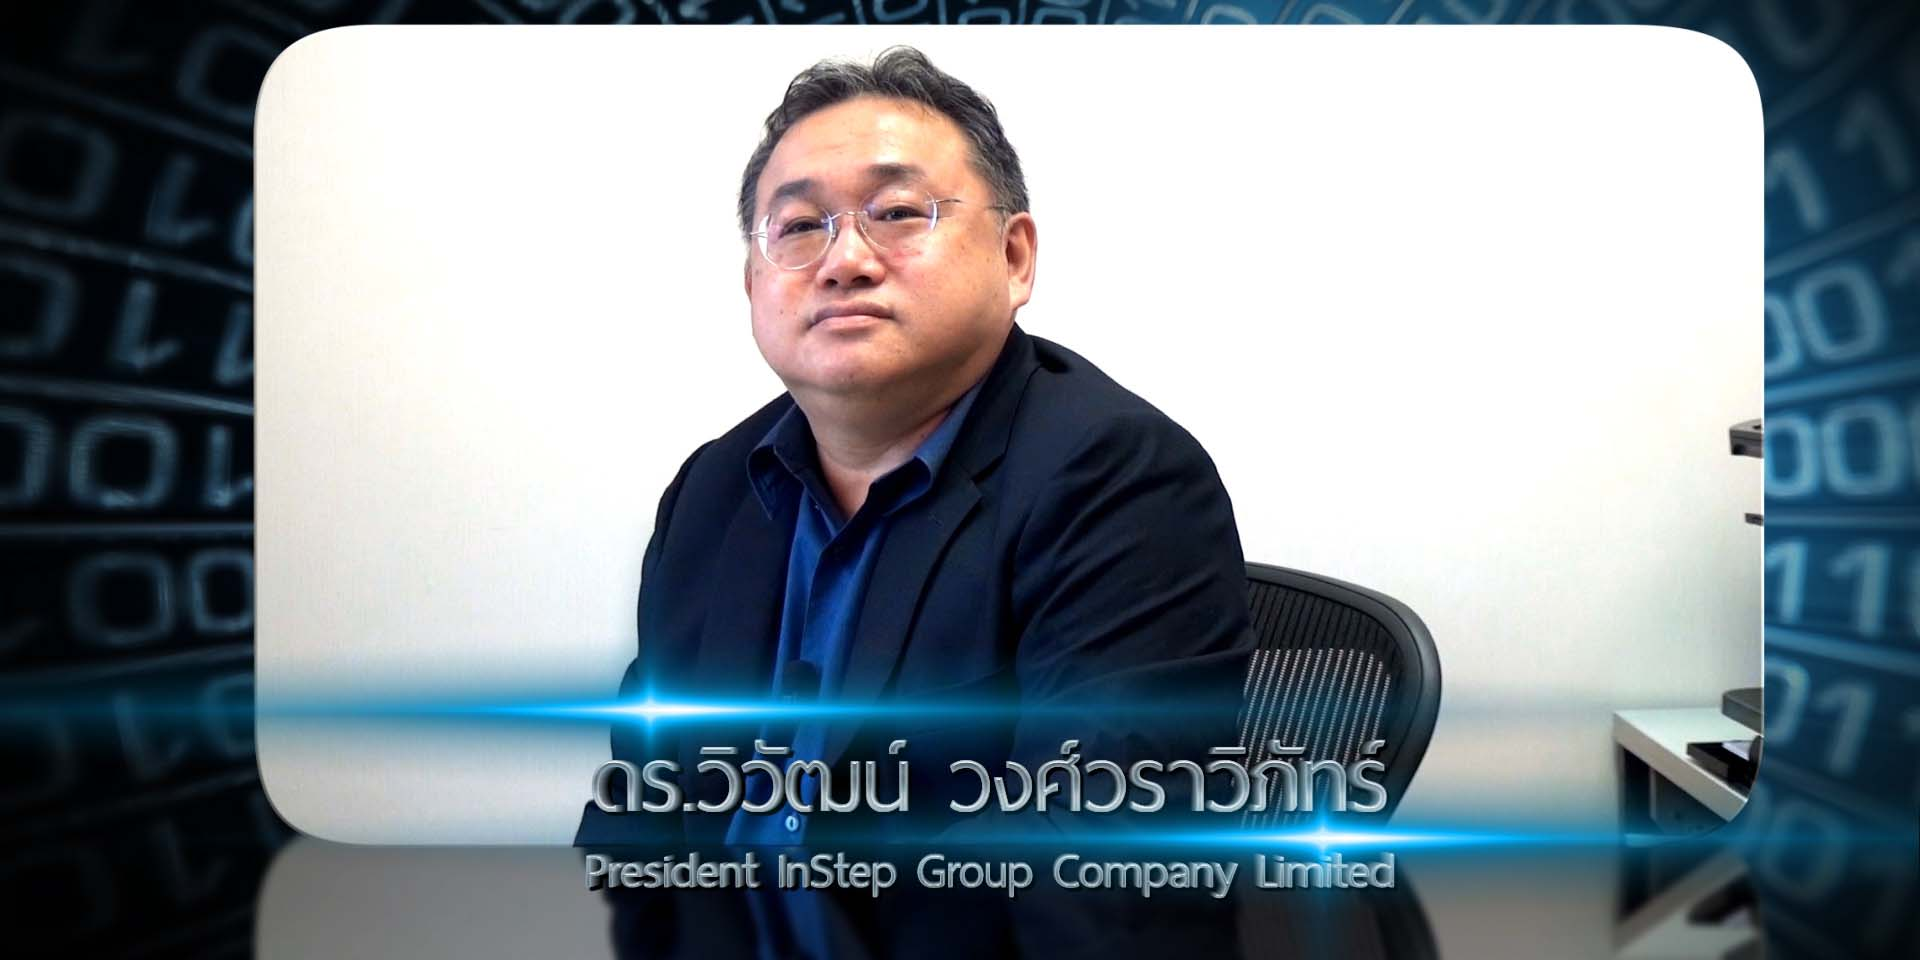 Instep Group